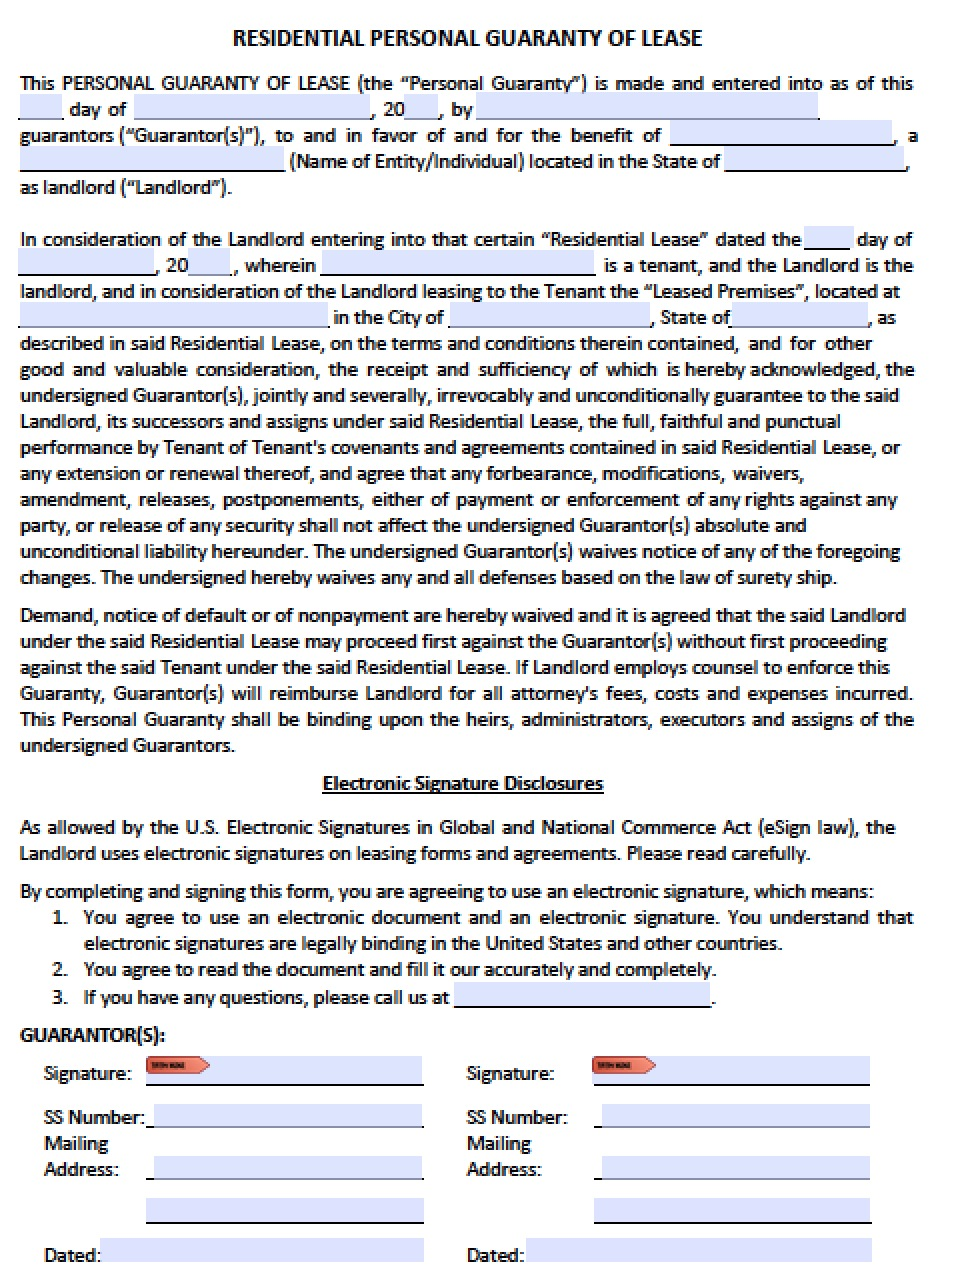 Transfer Admission Guarantee Uc Admissions Download Personal Guarantee Agreement Forms Leases